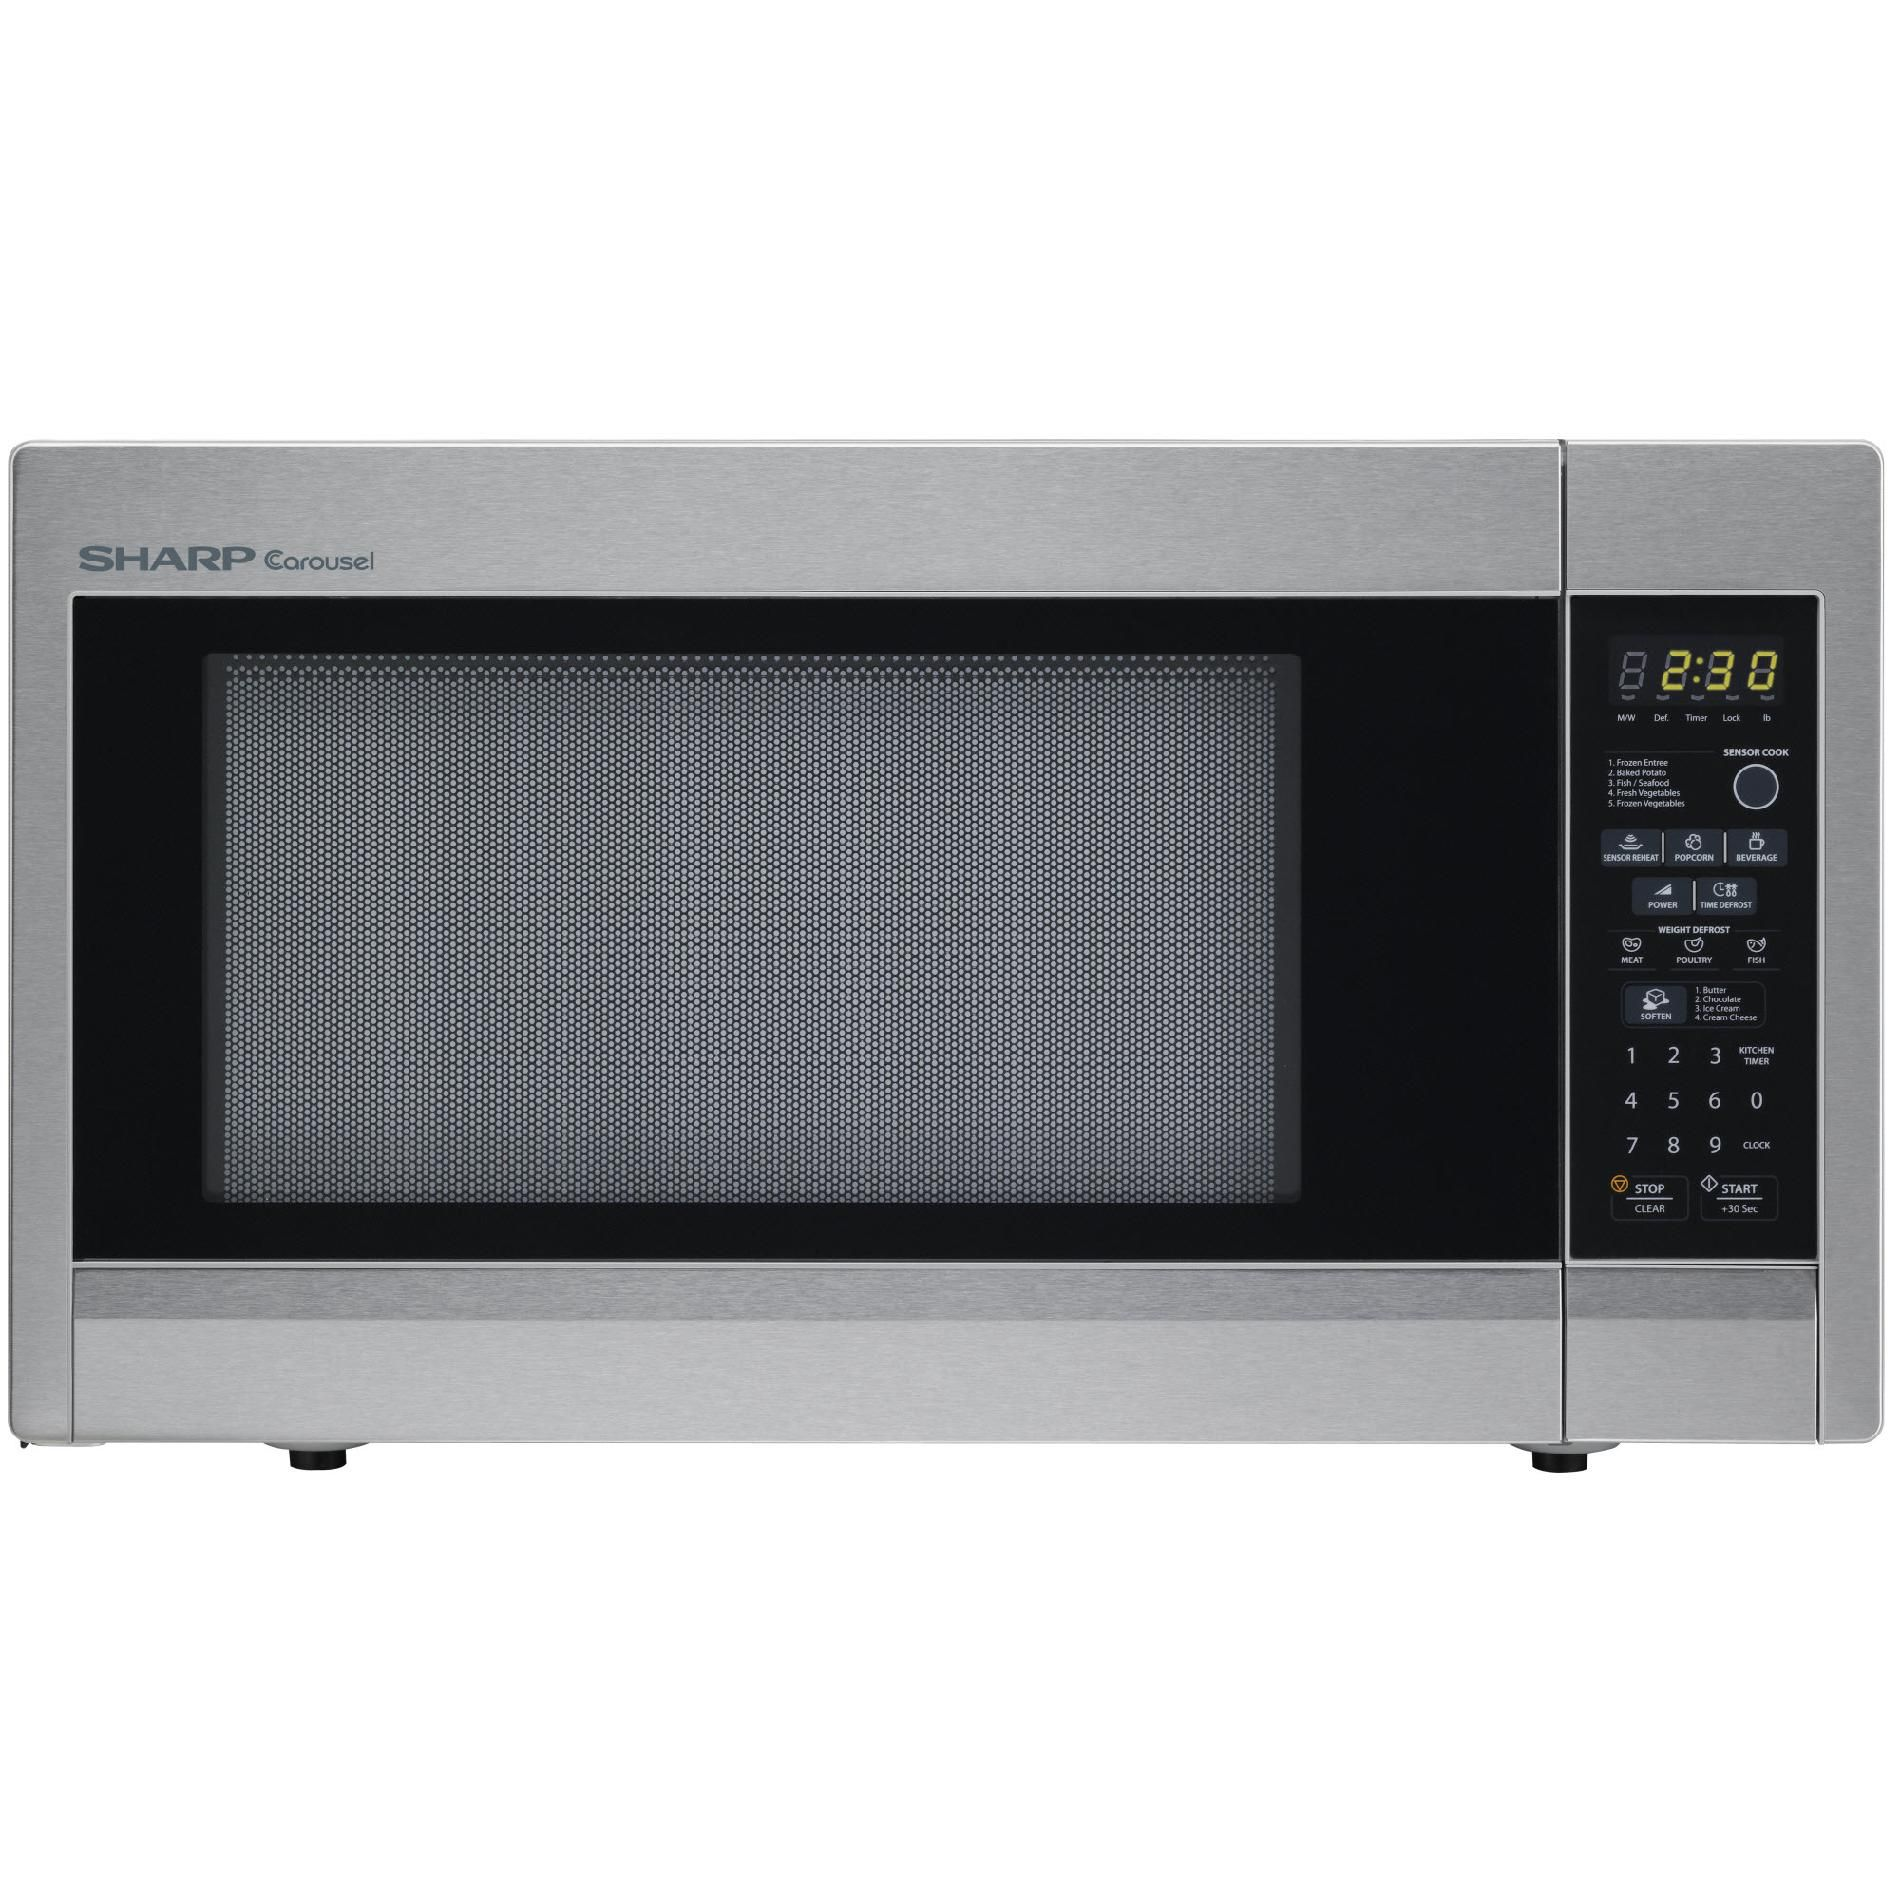 Default Title Stainless Steel Oven Microwave Oven Microwave